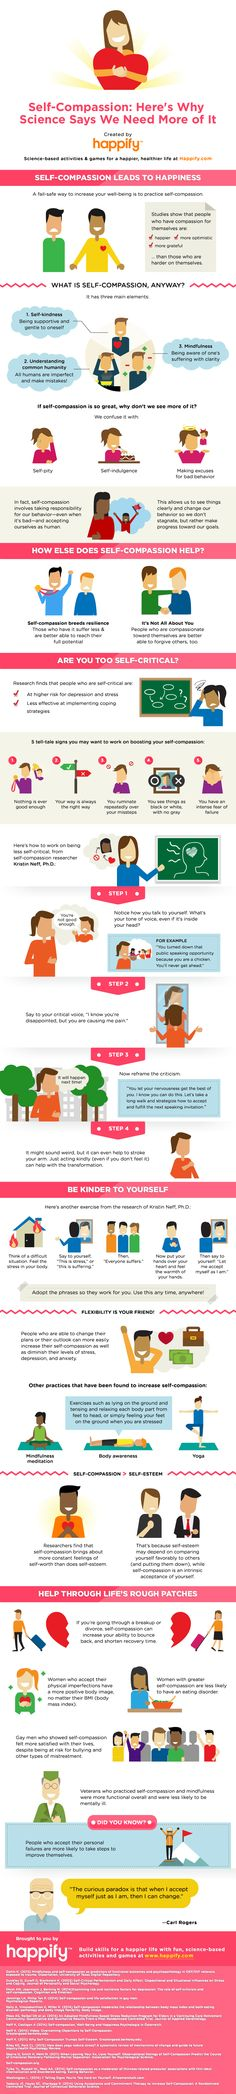 """With all the focus on love for others this Holiday Season, it's important to remember that a healthy relationship with yourself is just as important.  Happify's infographic, """"Self-Compassion: Here's Why Science Says We Need More of It,"""" presents ways to be kinder to yourself and tips to identify/reduce self-criticism."""